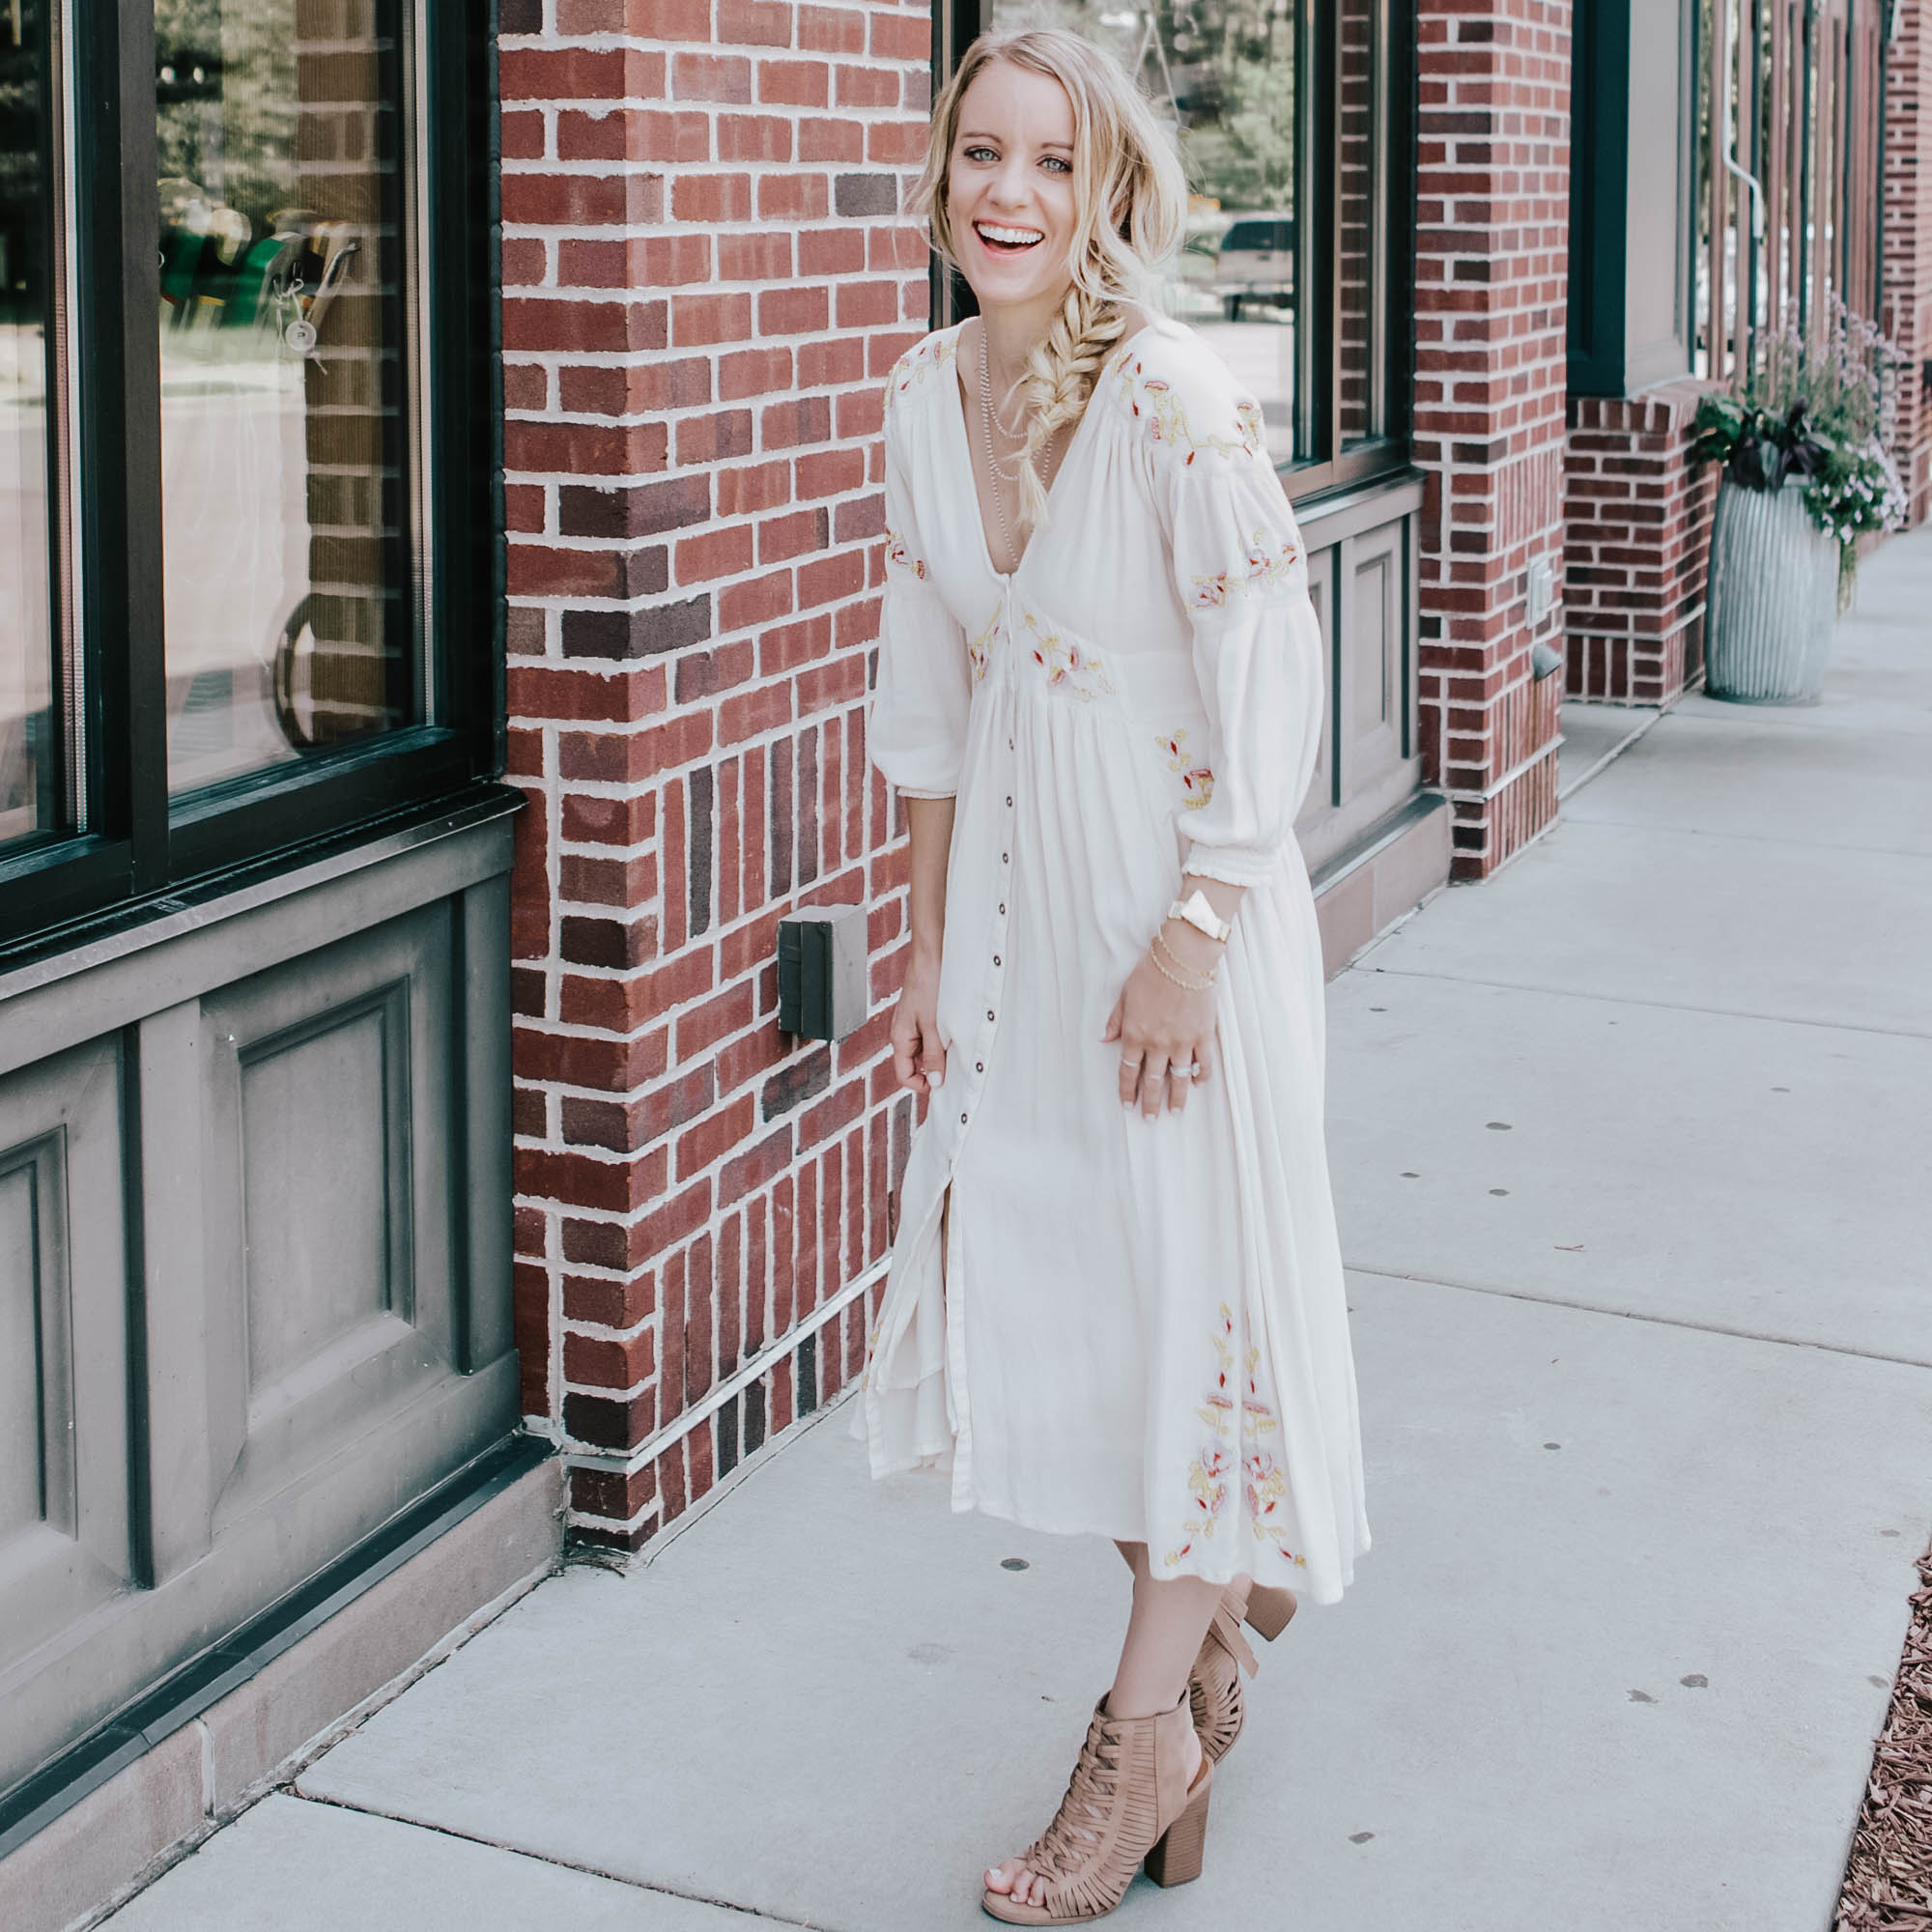 white free people dress - 5 tips for self care